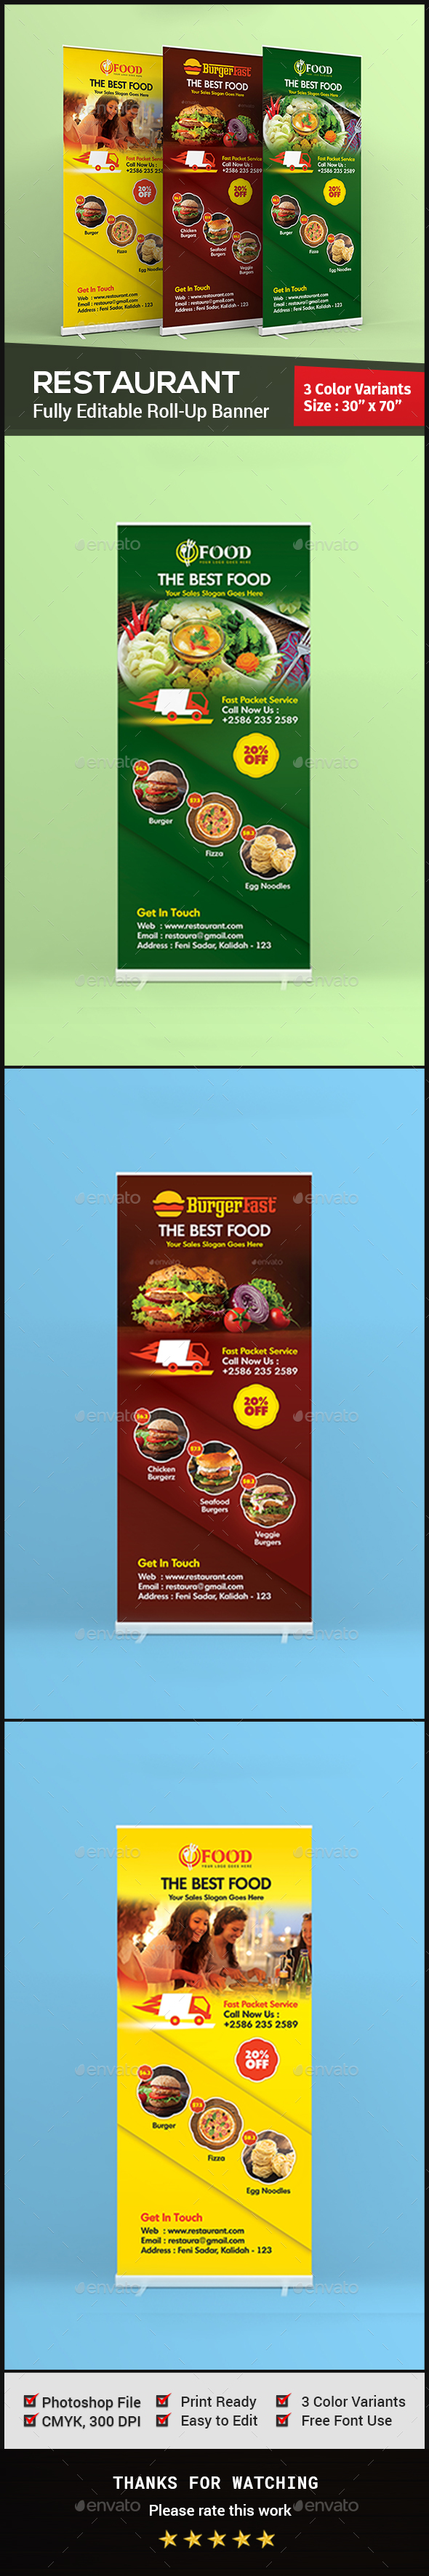 Restaurant Roll Up Banner - Signage - Signage Print Templates